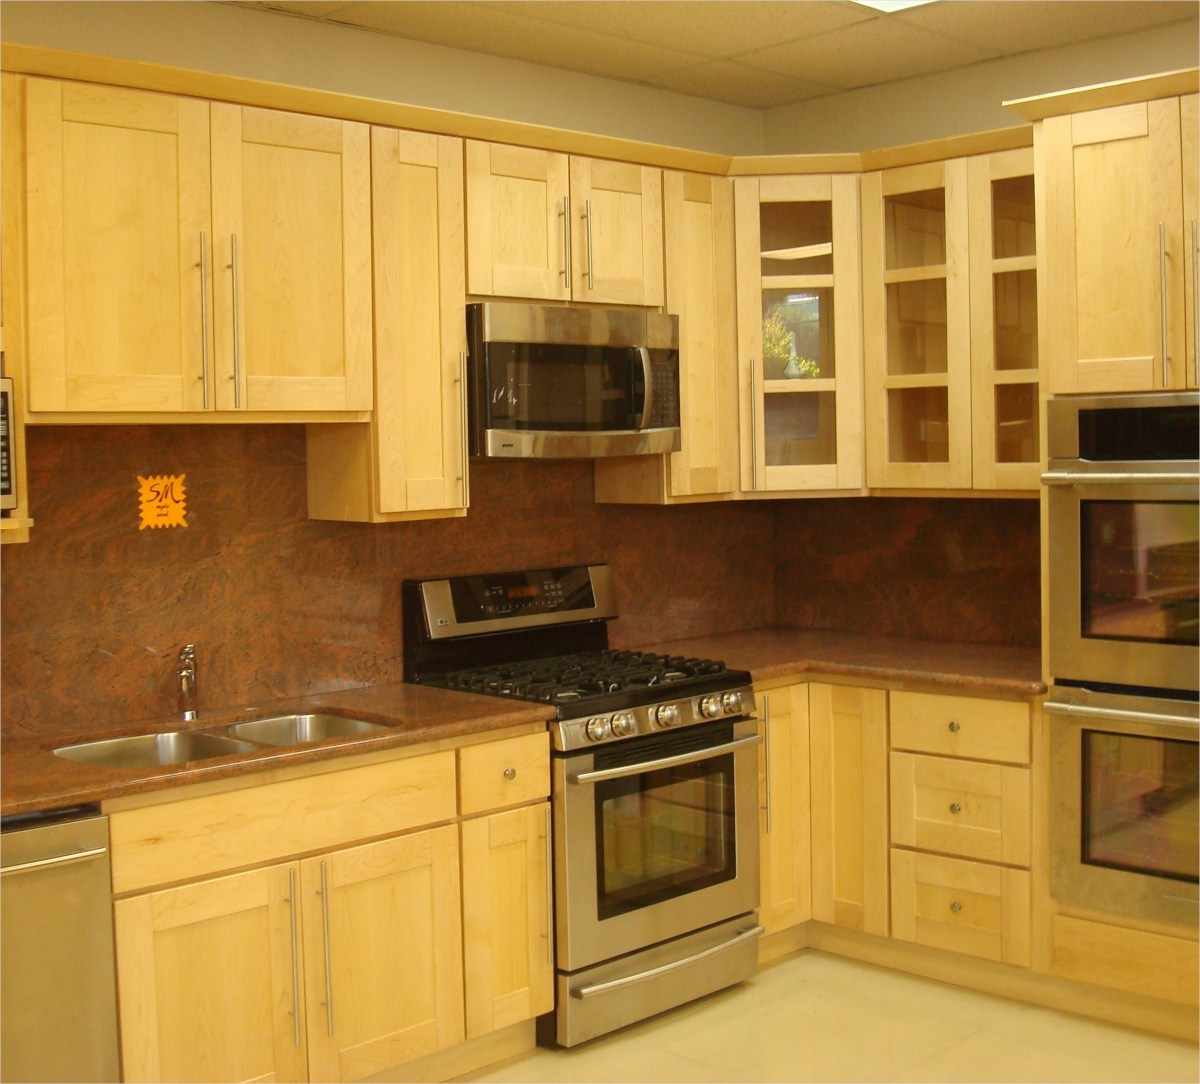 Kitchen with Maple Cabinets Color Ideas 29 Kitchen Lake forest Park Residence 109 Kitchen Color Ideas with Maple Cabinets Ahhualongganggou 4